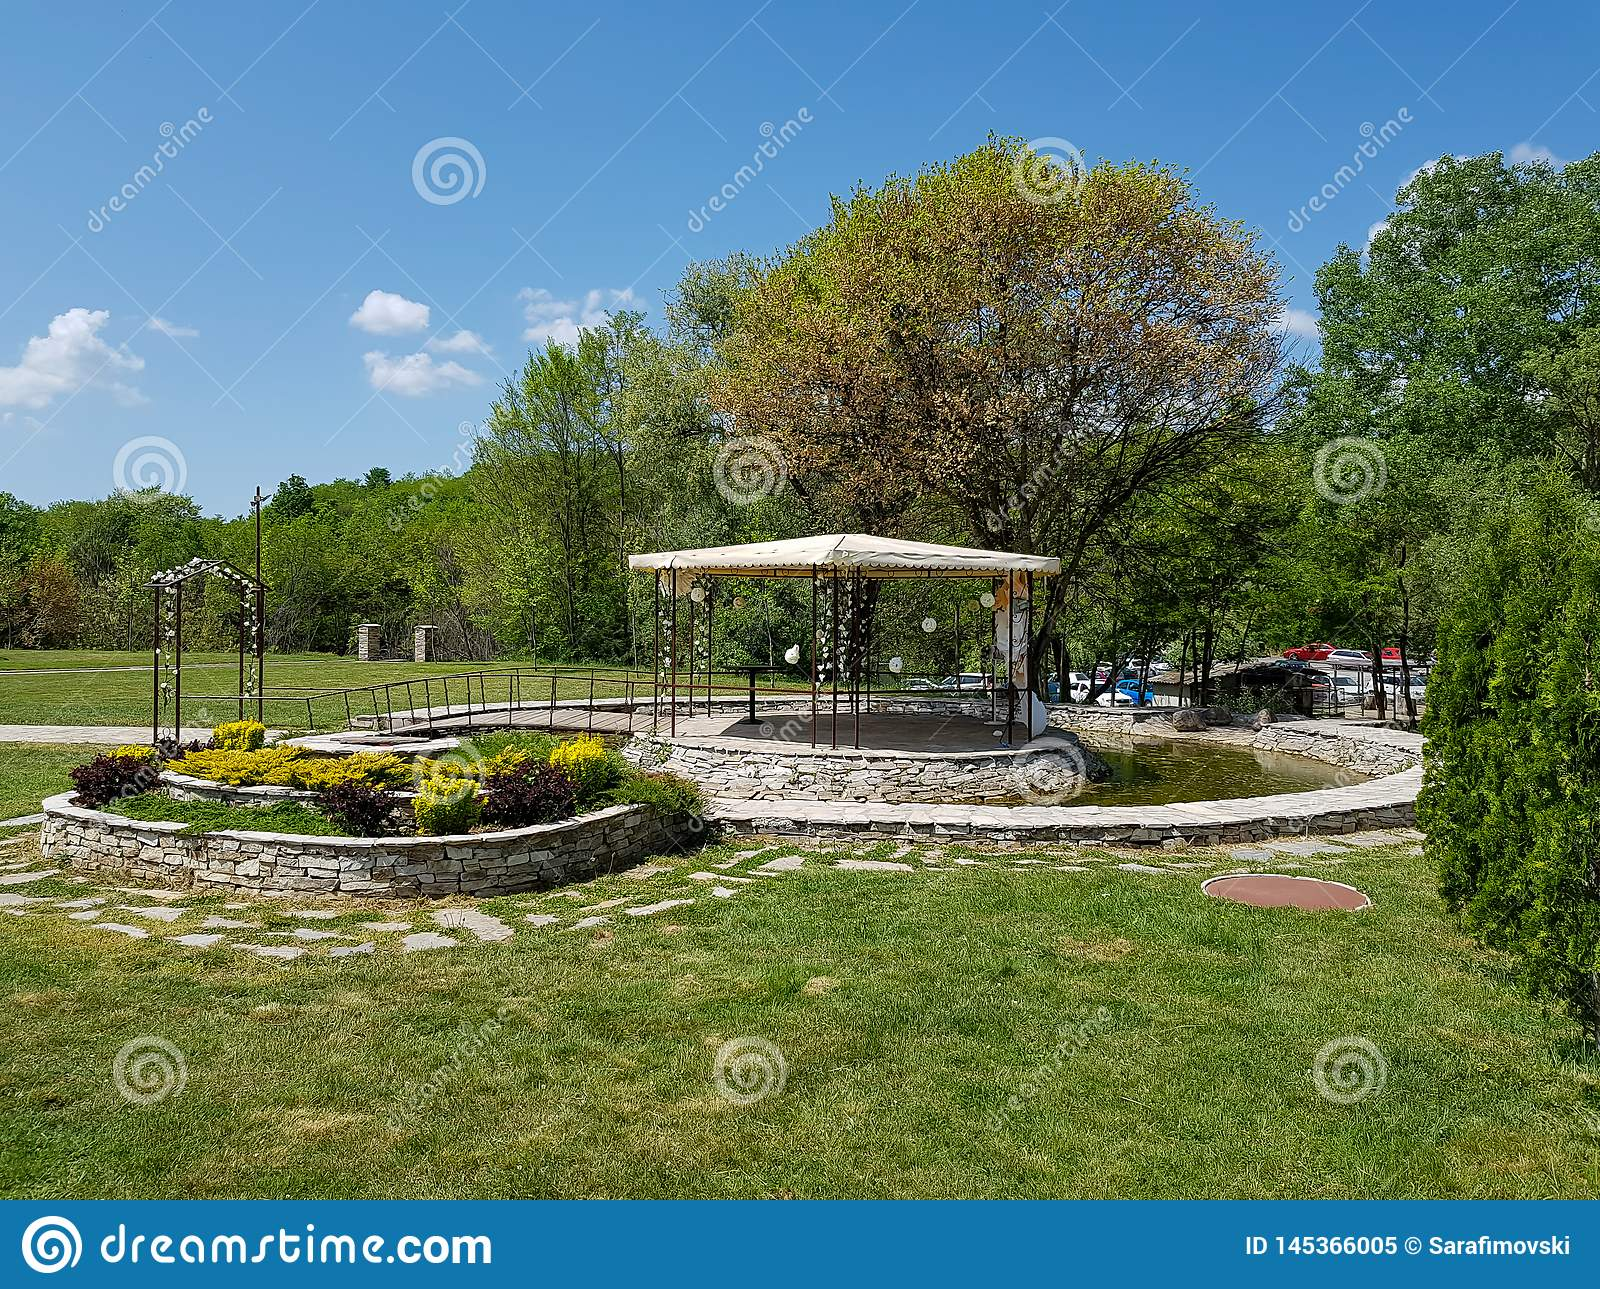 Reception Ceremony Length: Decorative Place For Ceremonies Or Entertainments. Outdoor